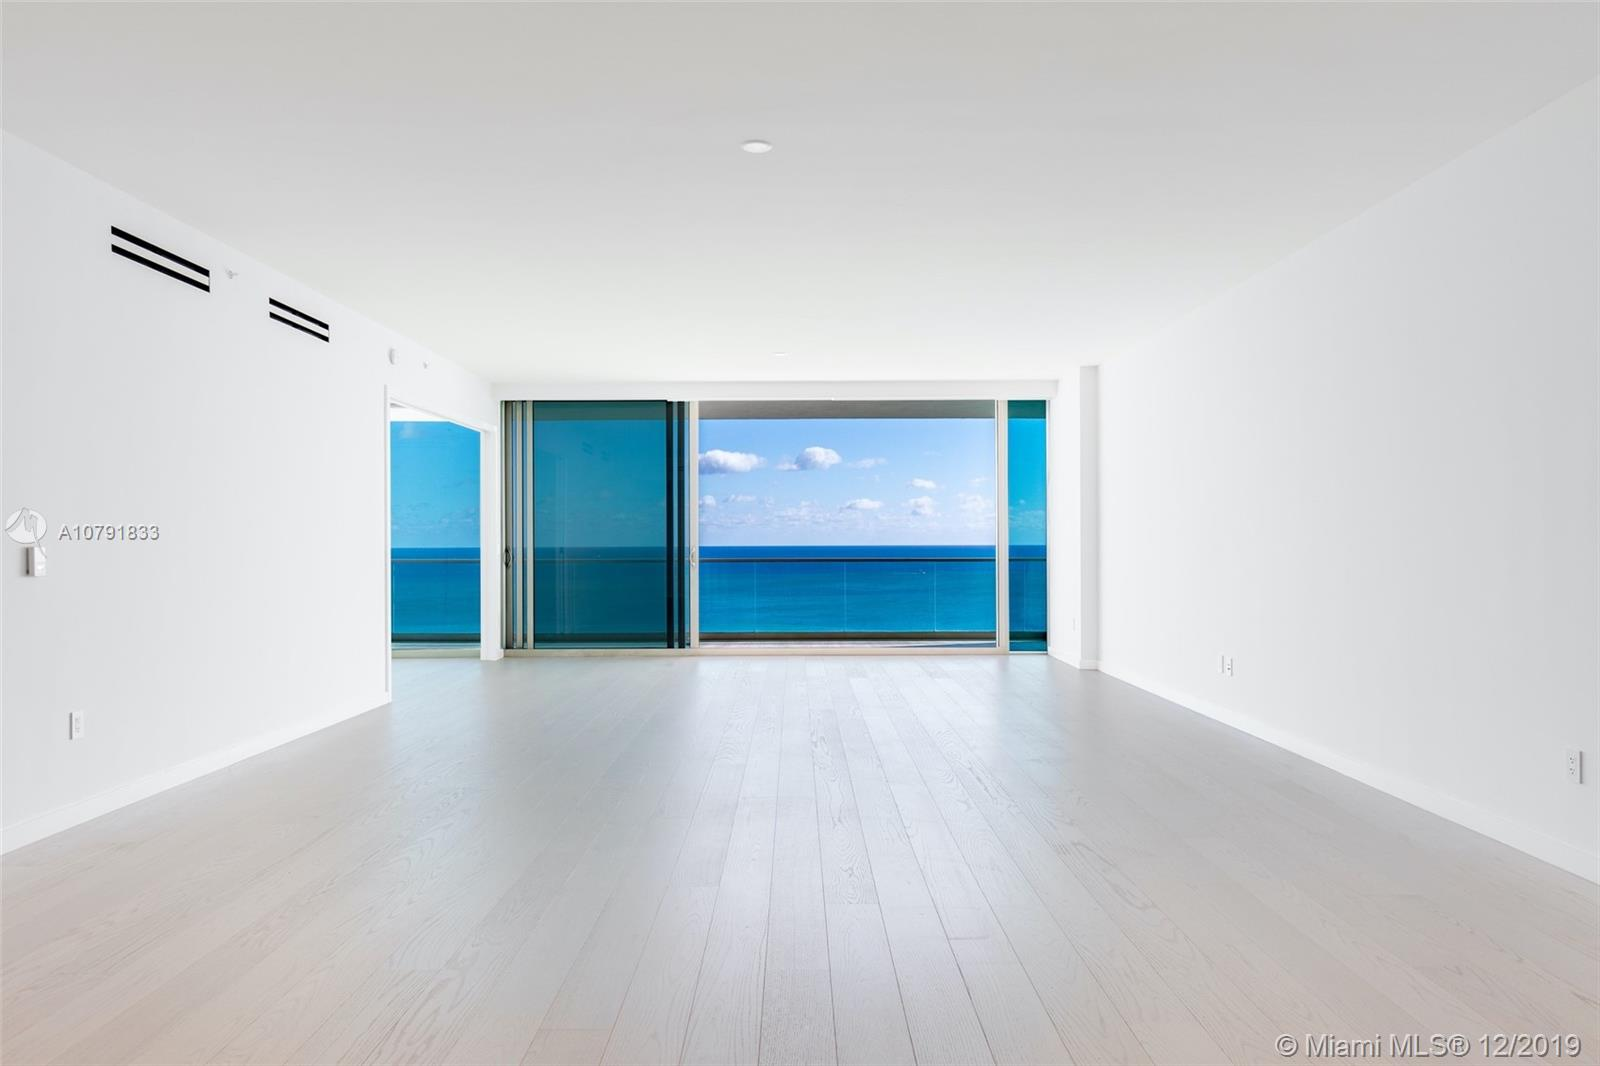 Located in prestigious Oceana Bal Harbour, this brand new just finished, high floor flow-thru residence boasts unobstructed breathtaking east views to the Atlantic Ocean & Biscayne Bay, & beautiful open intracoastal & Downtown Miami skyline views to the west. At 3,450 SF, with 3bed/4.5 Bath + Service Quarters, this residence lives like a home. Private Foyer Entry. Gourmet Kitchen with Dada Cabinetry & Gaggenau appliances. Master Bedroom entry repositioned to maximize ocean views. Fully built out closets & window treatments. Oceana redefines luxury in Bal Harbour with 5-star amenities that cater to a select few: beautifully manicured grounds, pool side private restaurant under Stephen Starr catering, beach service, tennis courts, spa,& museum quality art with sculptures by Jeff Koons.